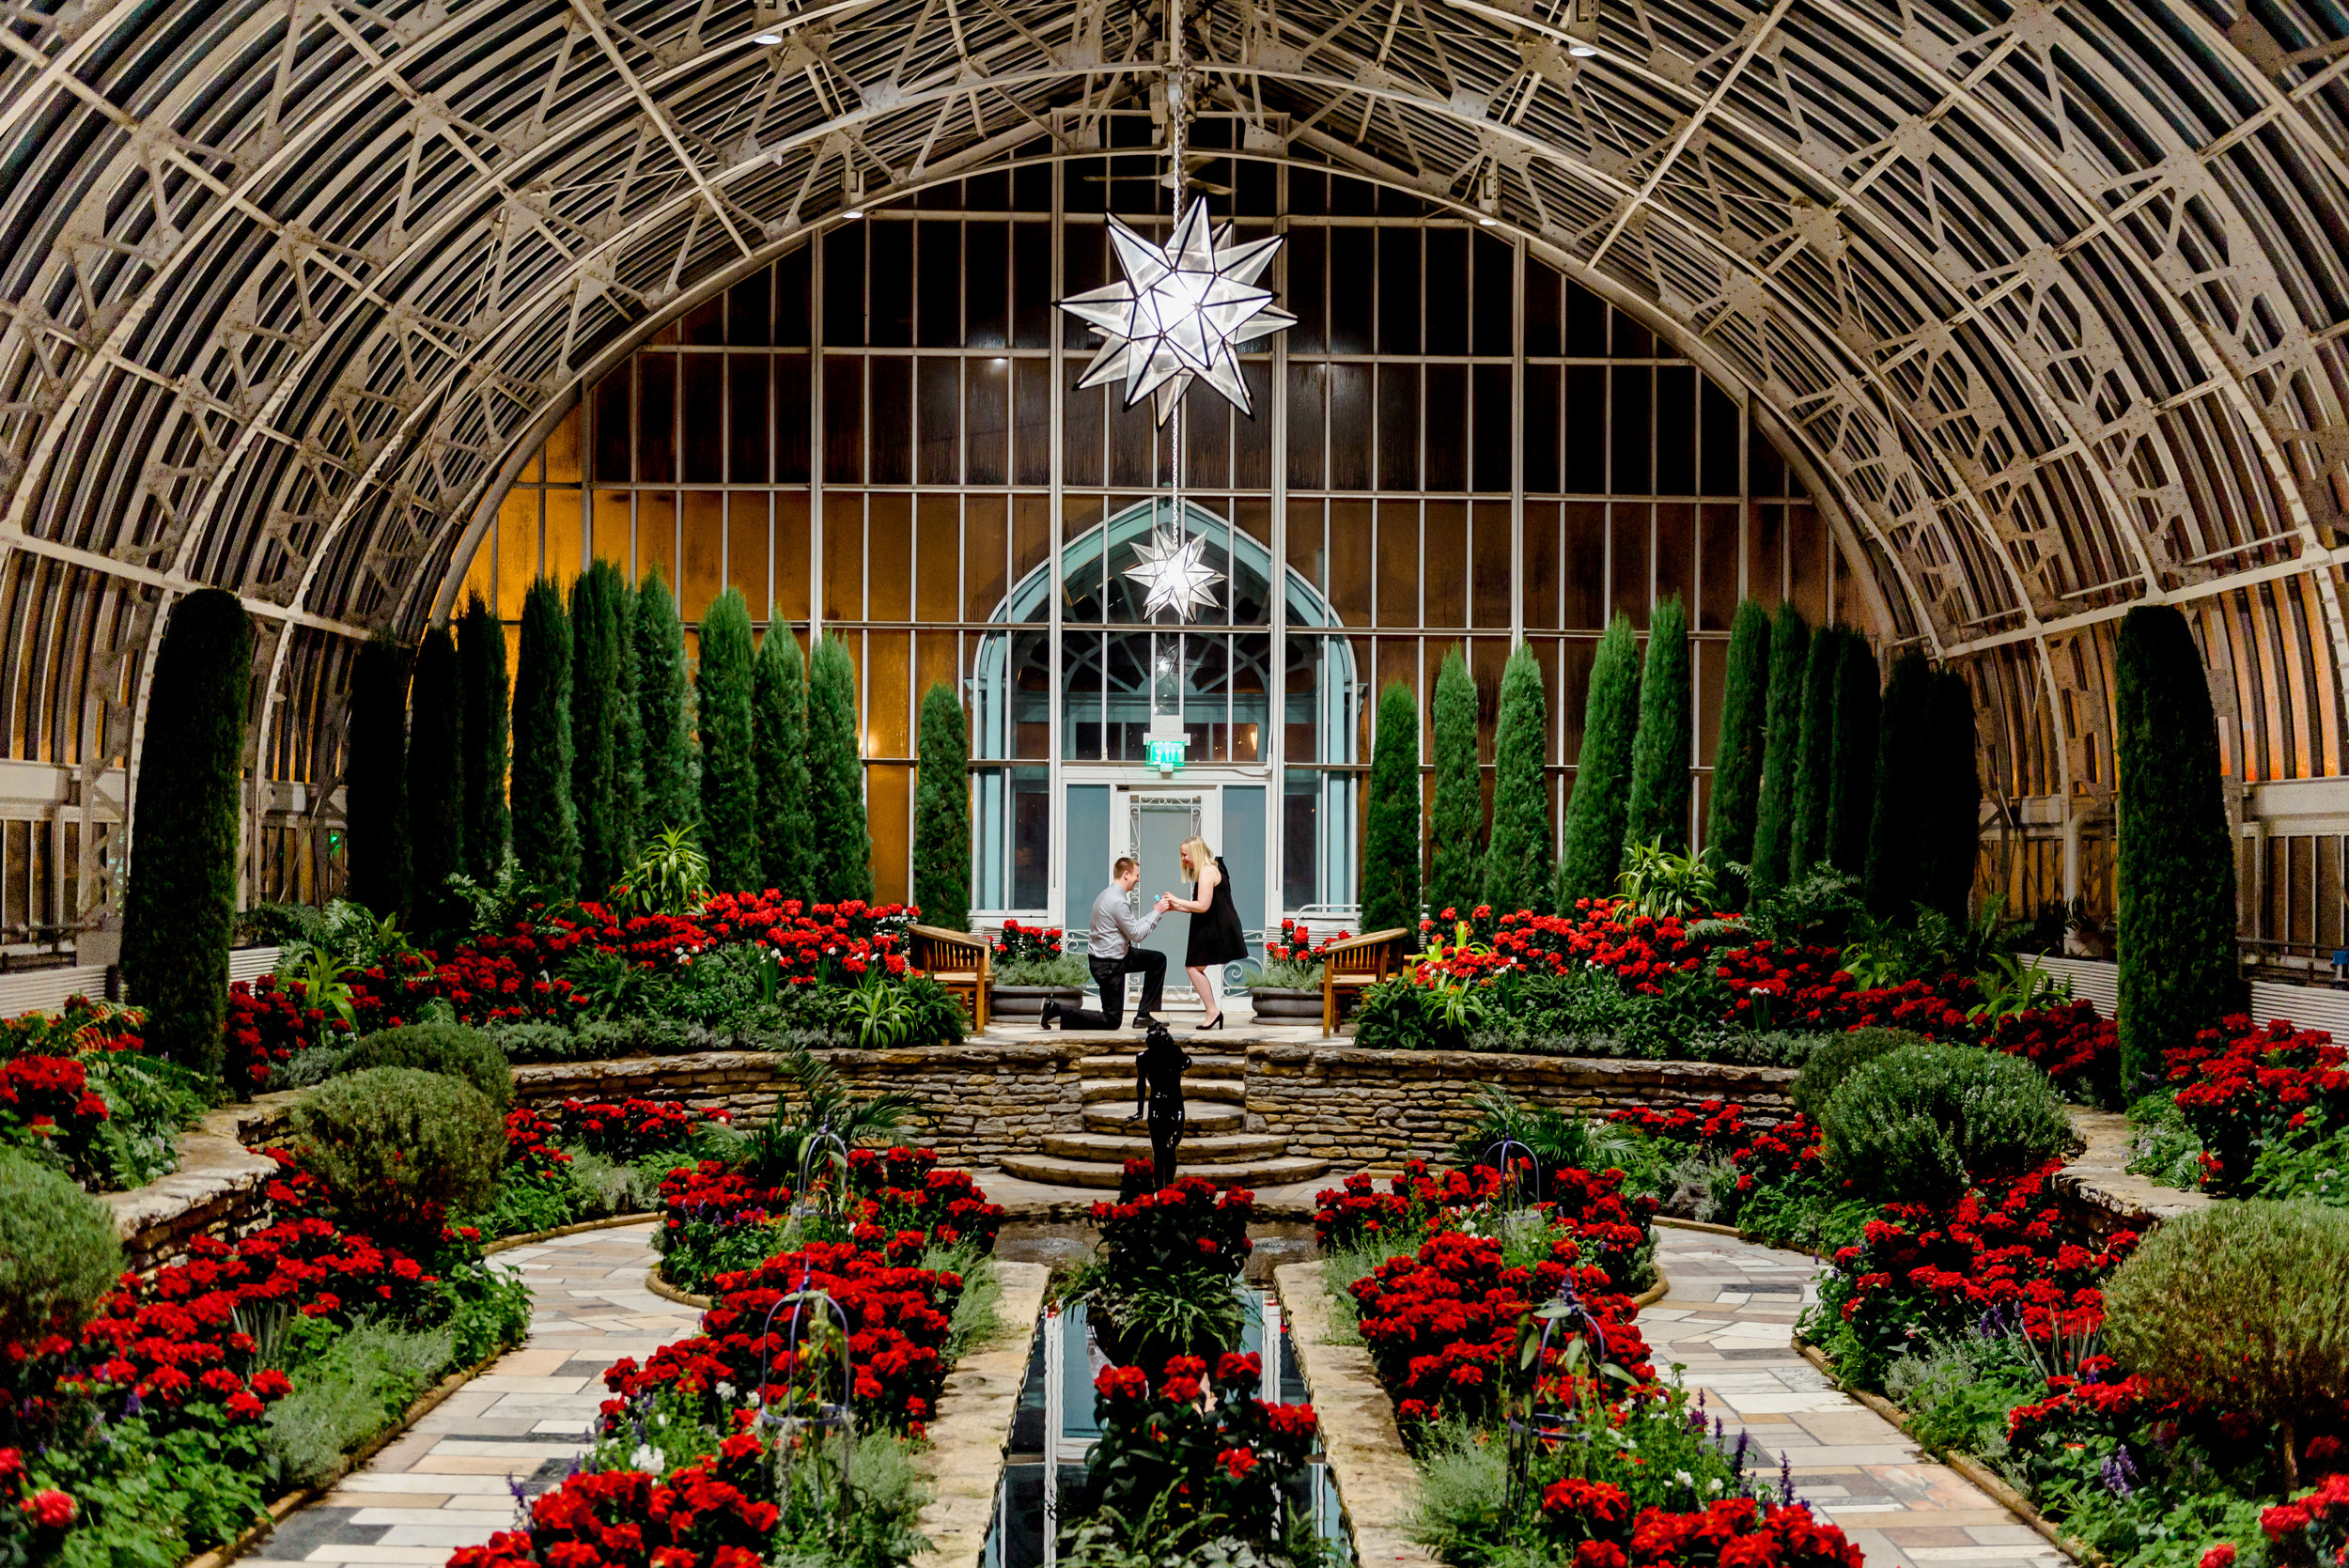 FAIRY TALE HOLIDAY GARDEN PROPOSAL - COMO CONSERVATORY - sT. pAUL, Mn